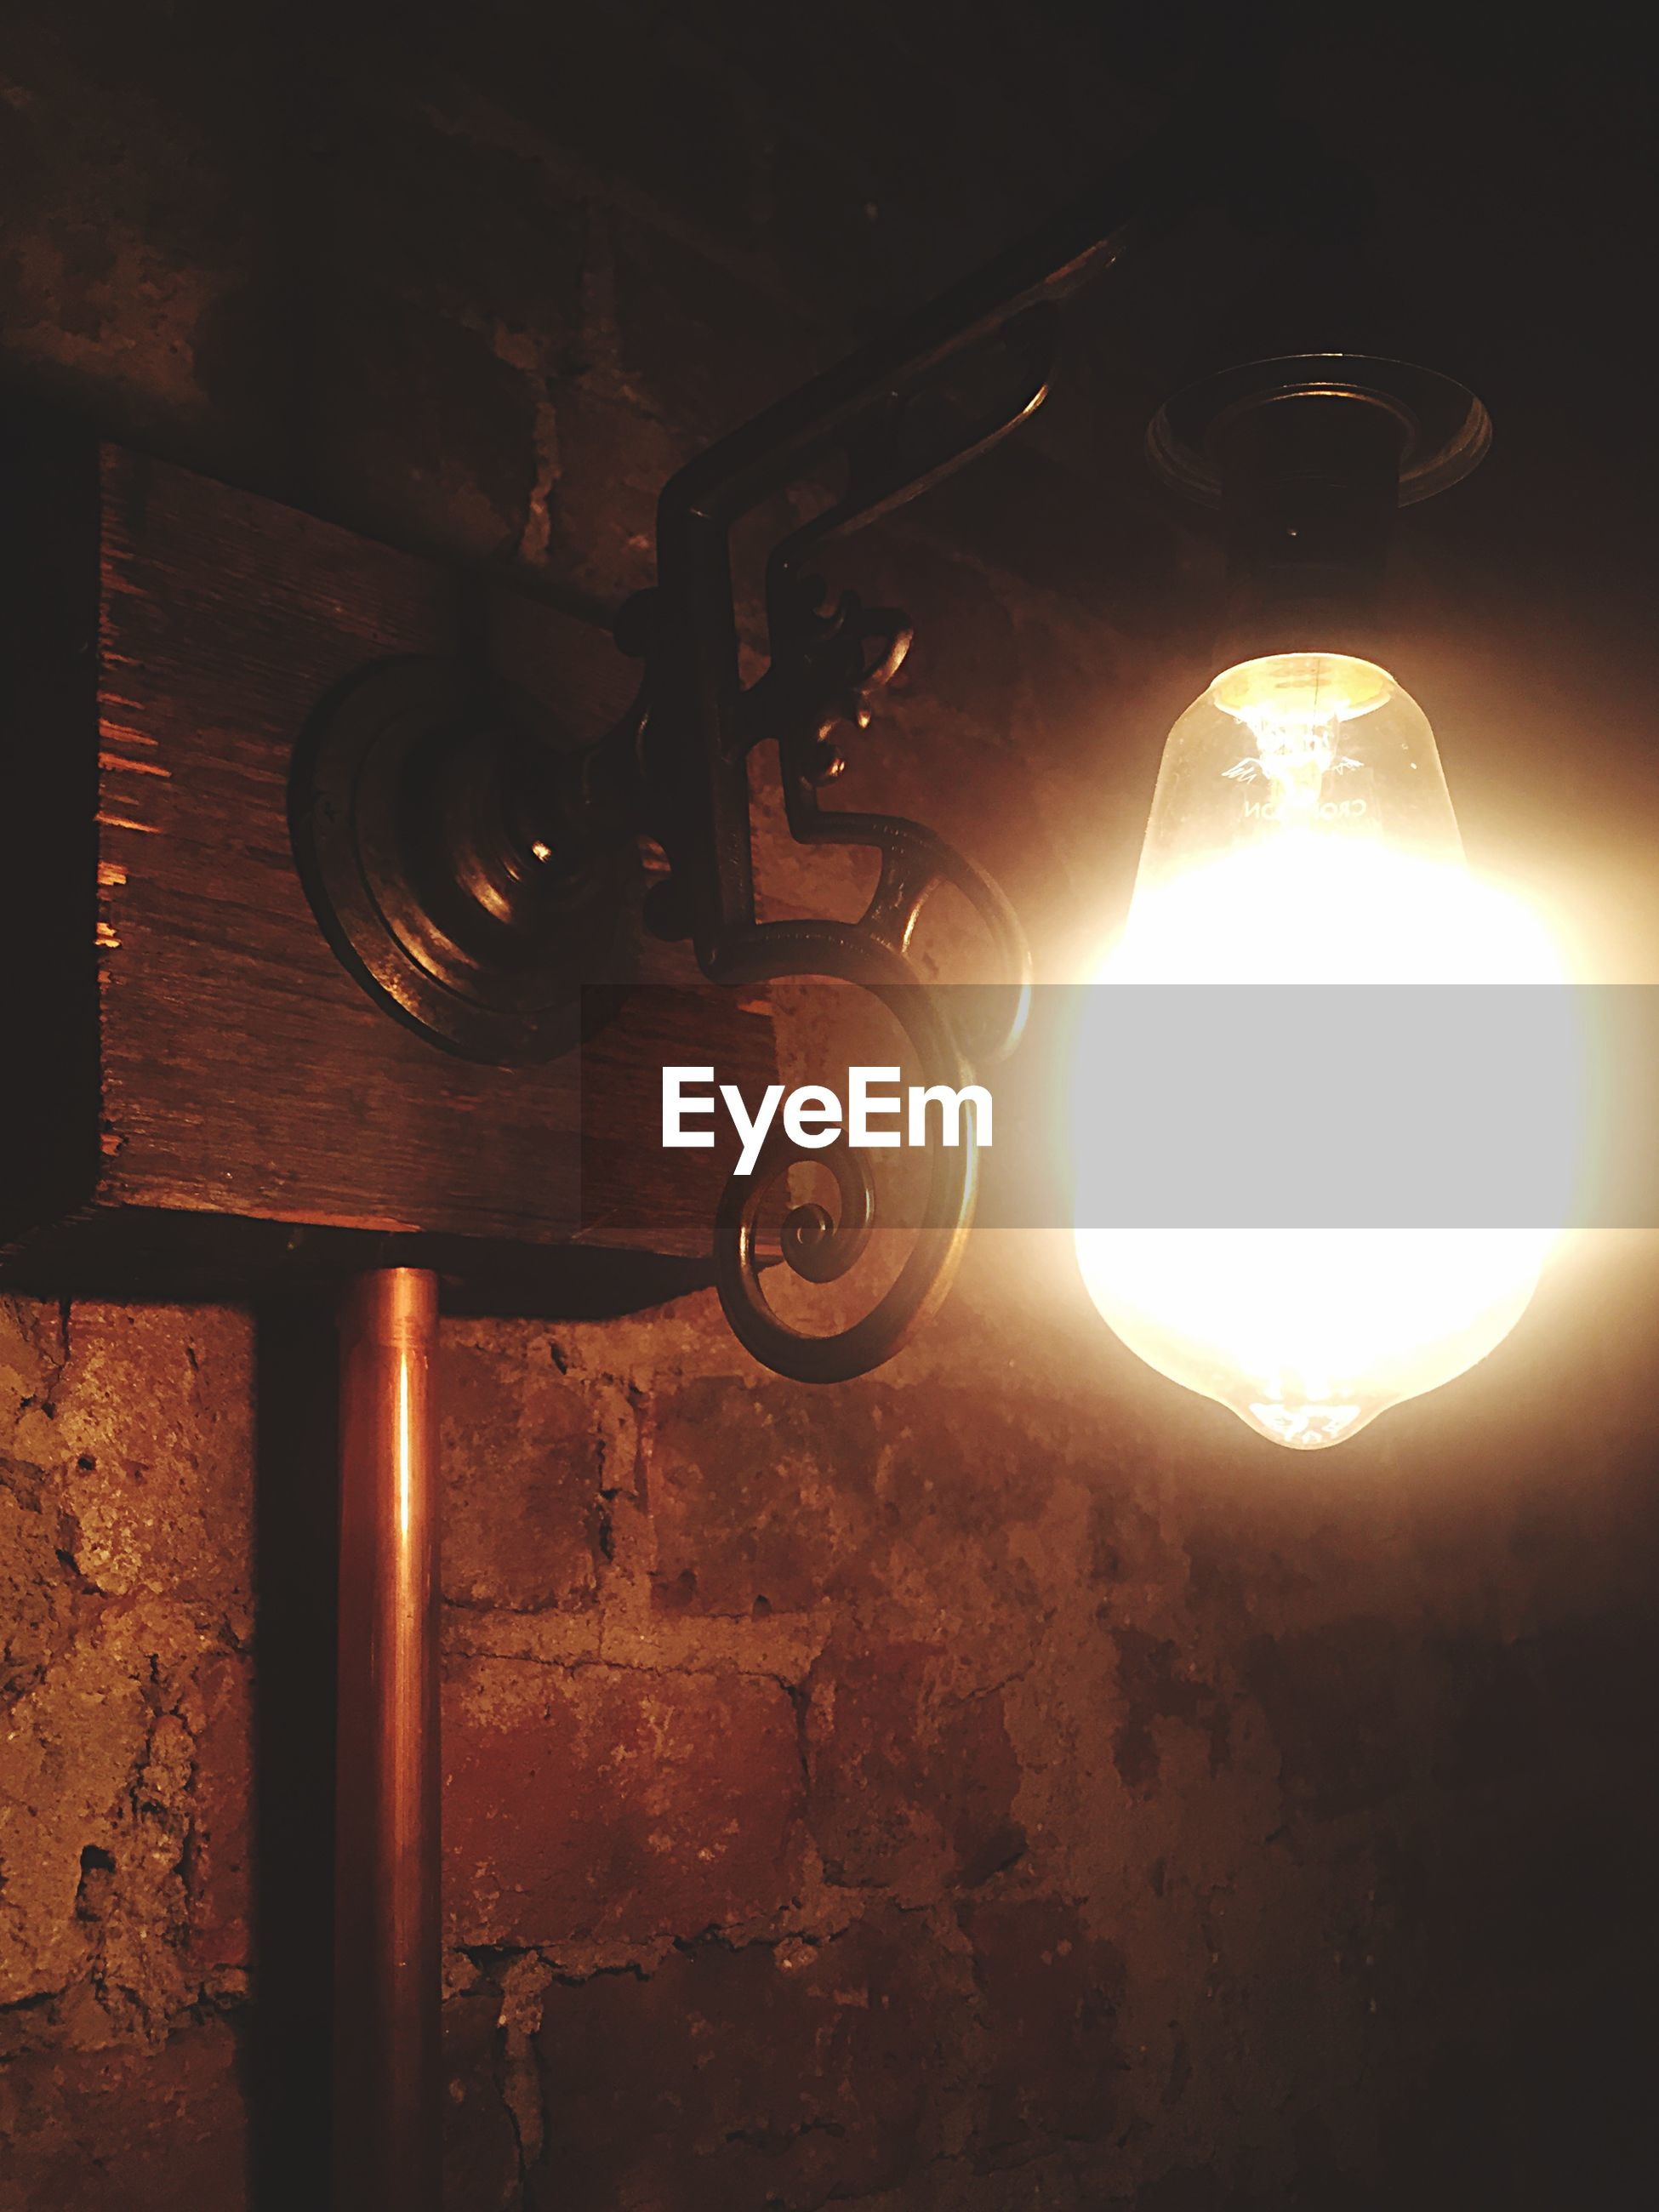 indoors, lighting equipment, old-fashioned, illuminated, wall - building feature, electricity, old, built structure, metal, abandoned, retro styled, architecture, technology, no people, obsolete, low angle view, close-up, sunlight, house, light - natural phenomenon